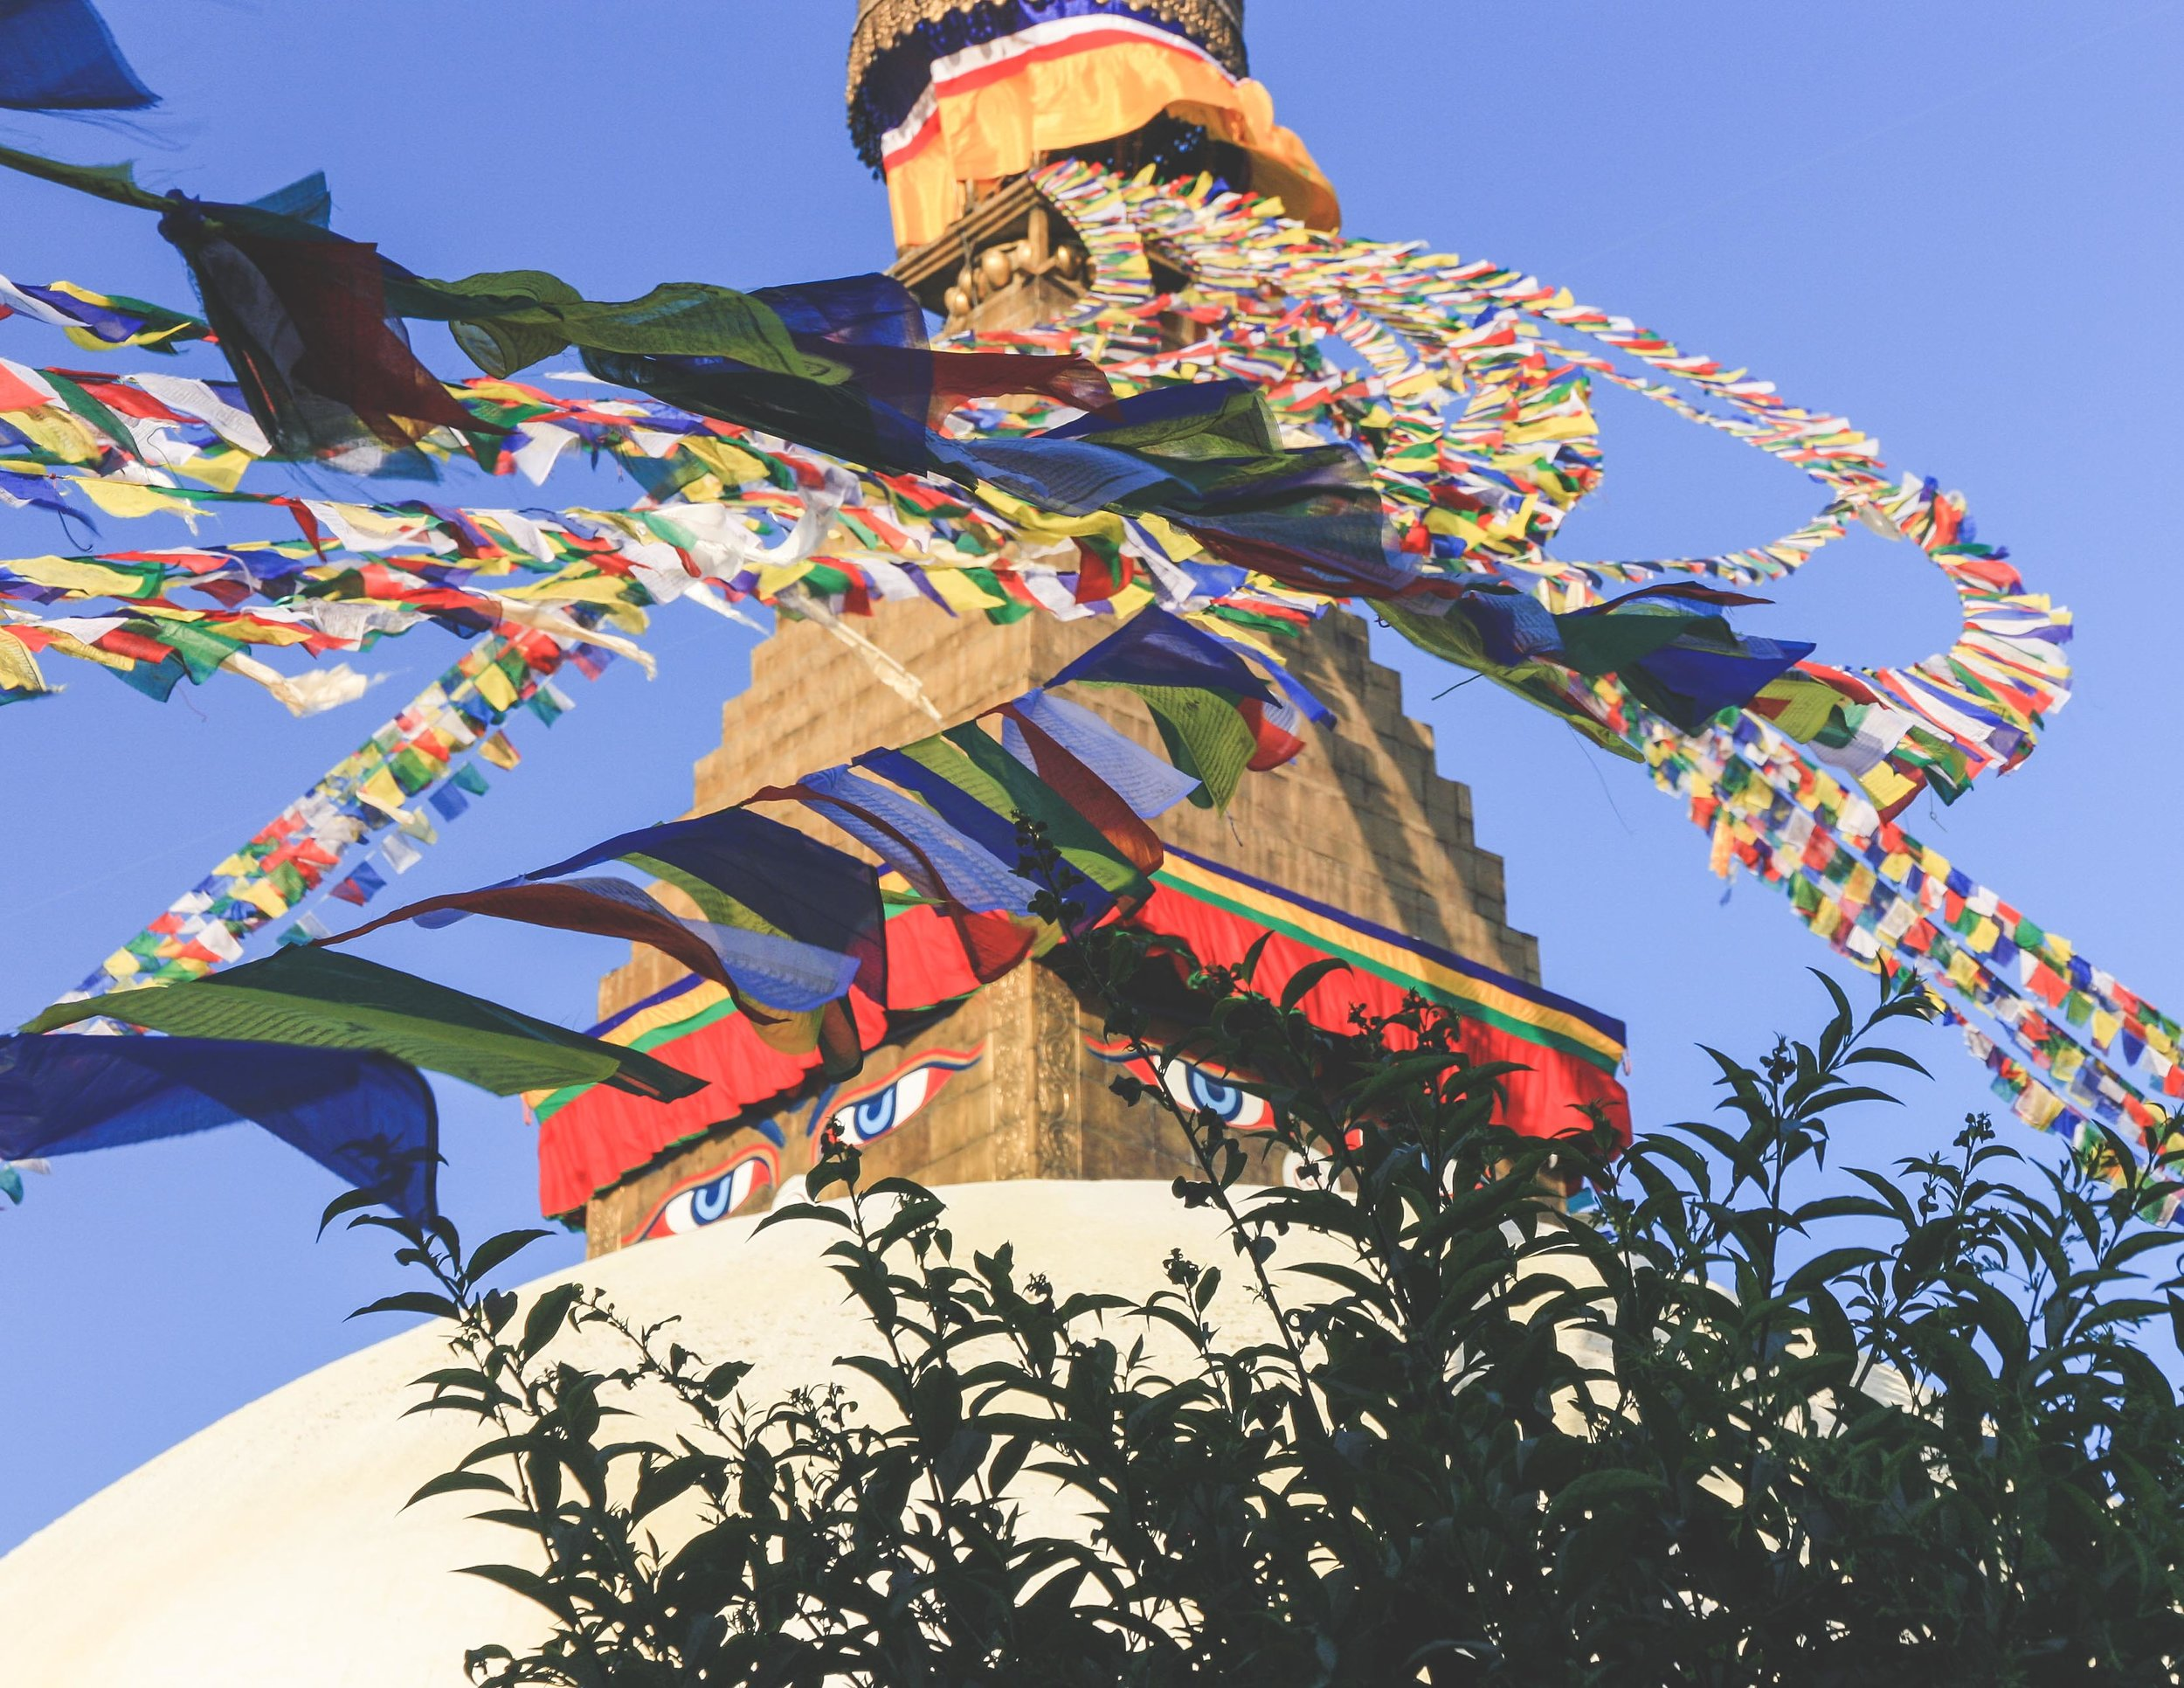 Best things to do in Nepal: Boudnath